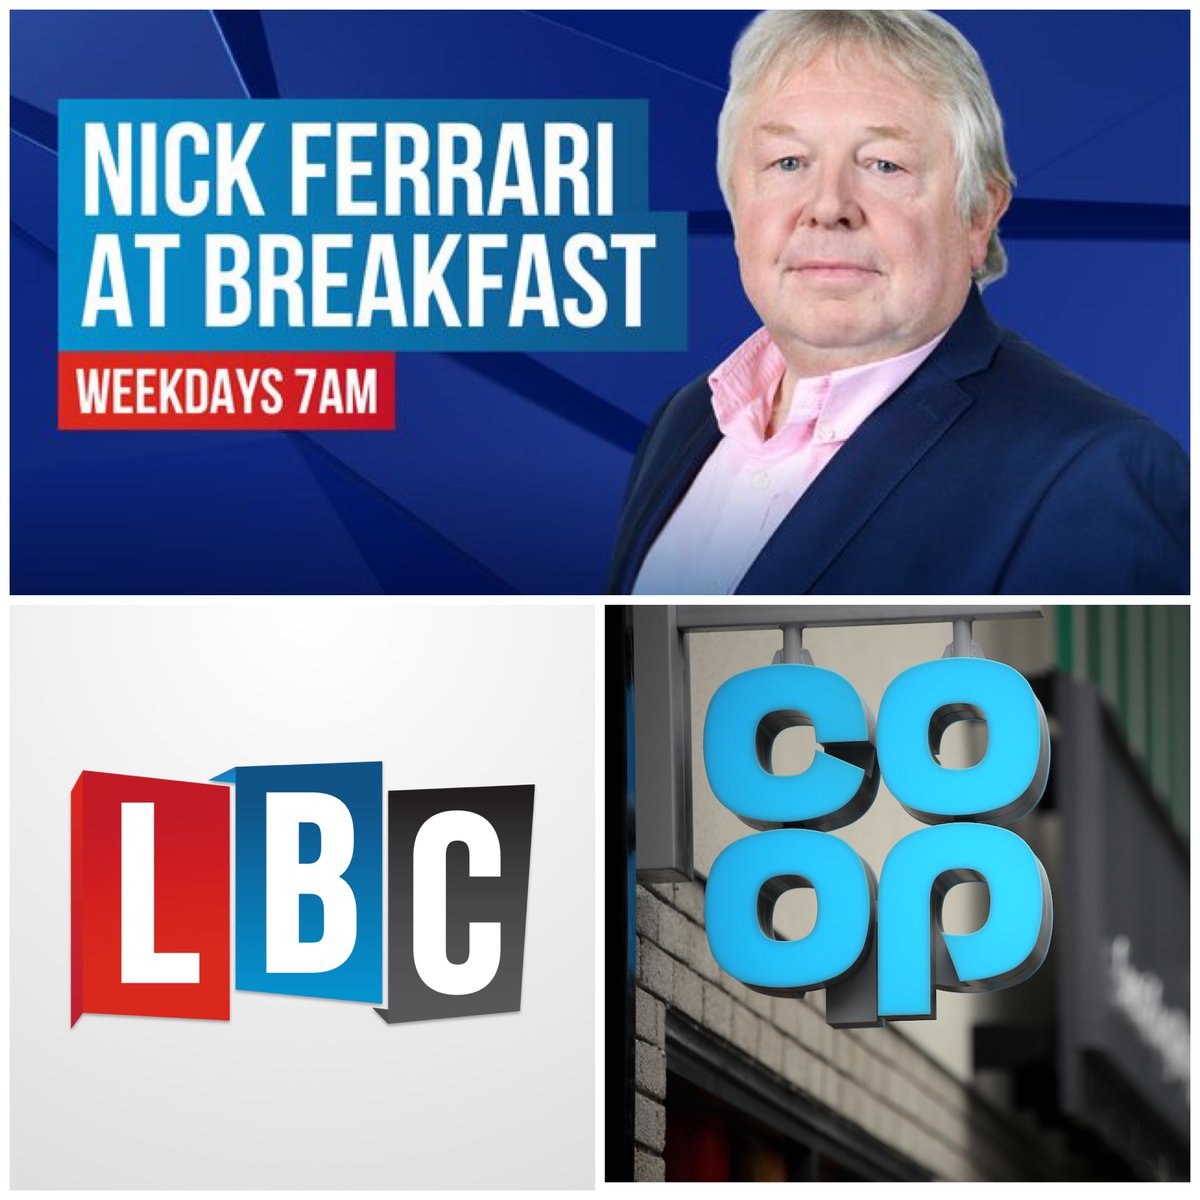 Glad of chance to talk to @NickFerrariLBC @LBC about violence & abuse towards #shopworkers in #COVID19 - they deserve our thanks not abuse so hope @10DowningStreet finds time for @AlexNorrisNN Bill which will provide protection for them as @DJohnsonMSP has now done in Scotland